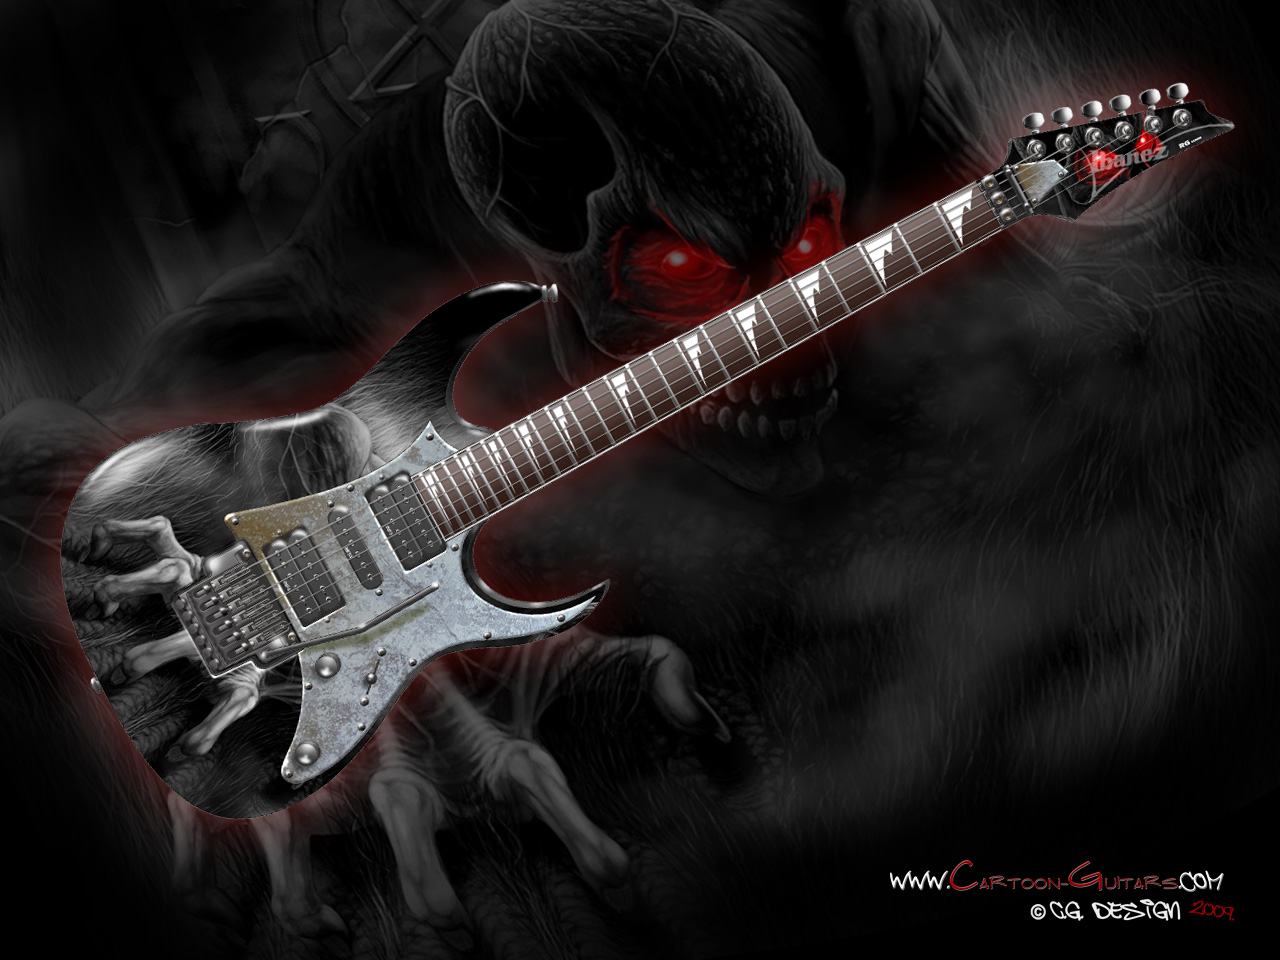 Ophelia S Adornments Blog May 2012: Top 23 Super And Fabulous Guitar Wallpapers In HD